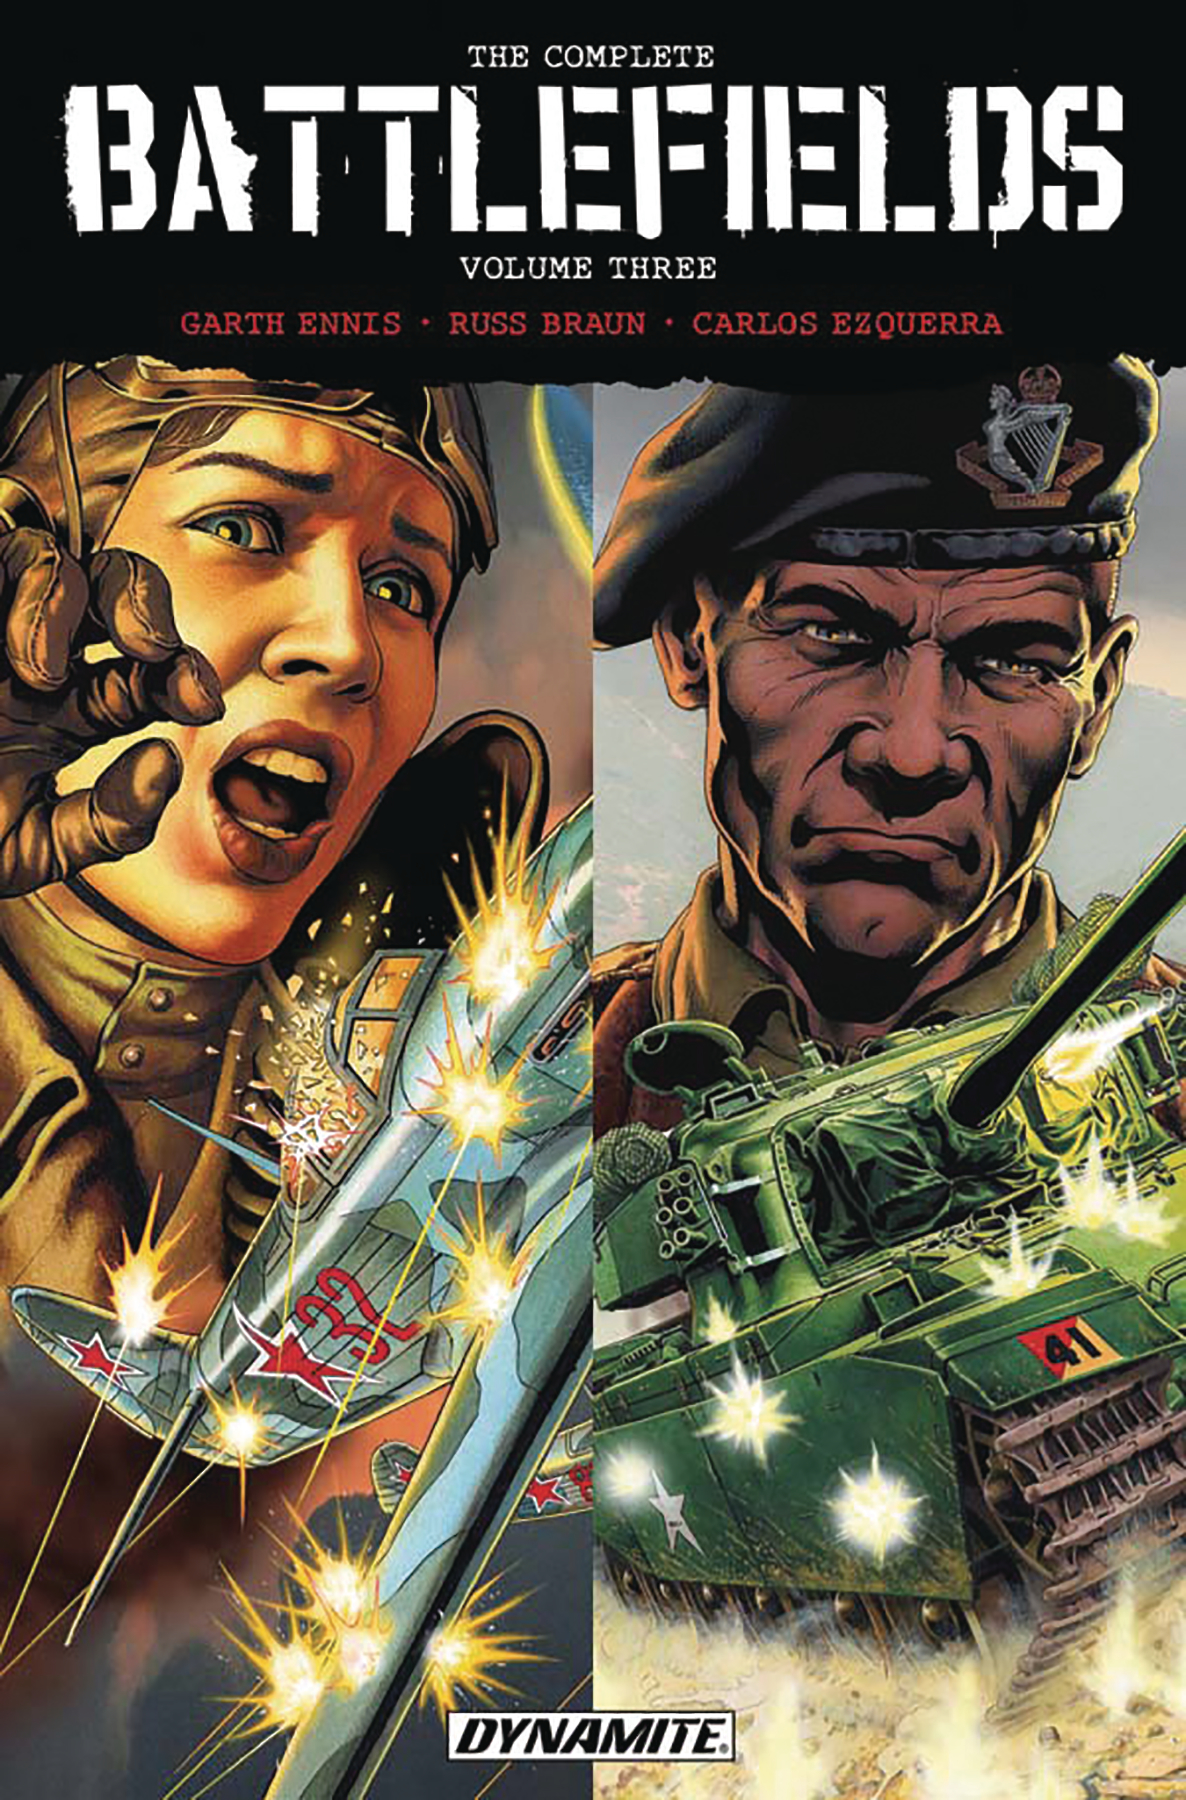 GARTH ENNIS COMPLETE BATTLEFIELDS TP VOL 03